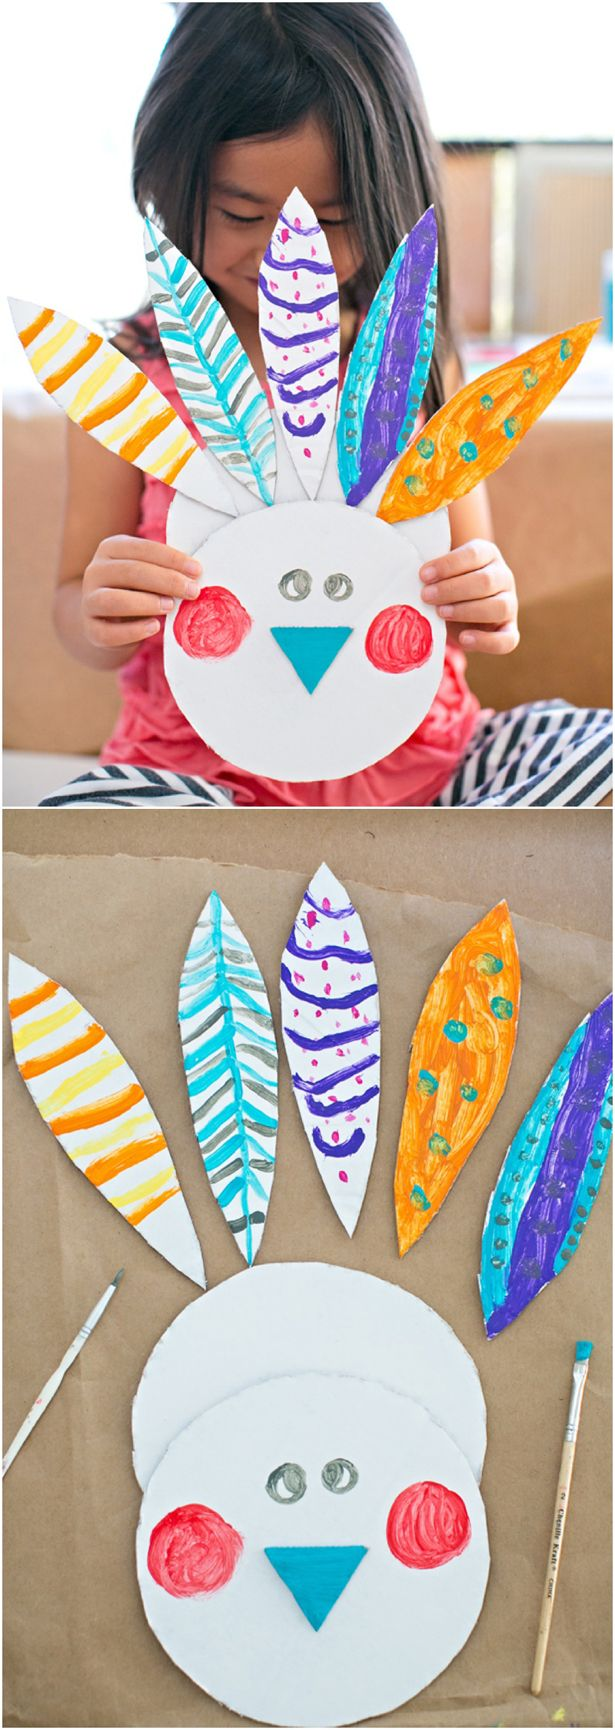 Easy Painted Cardboard Turkey Craft Cute Thanksgiving